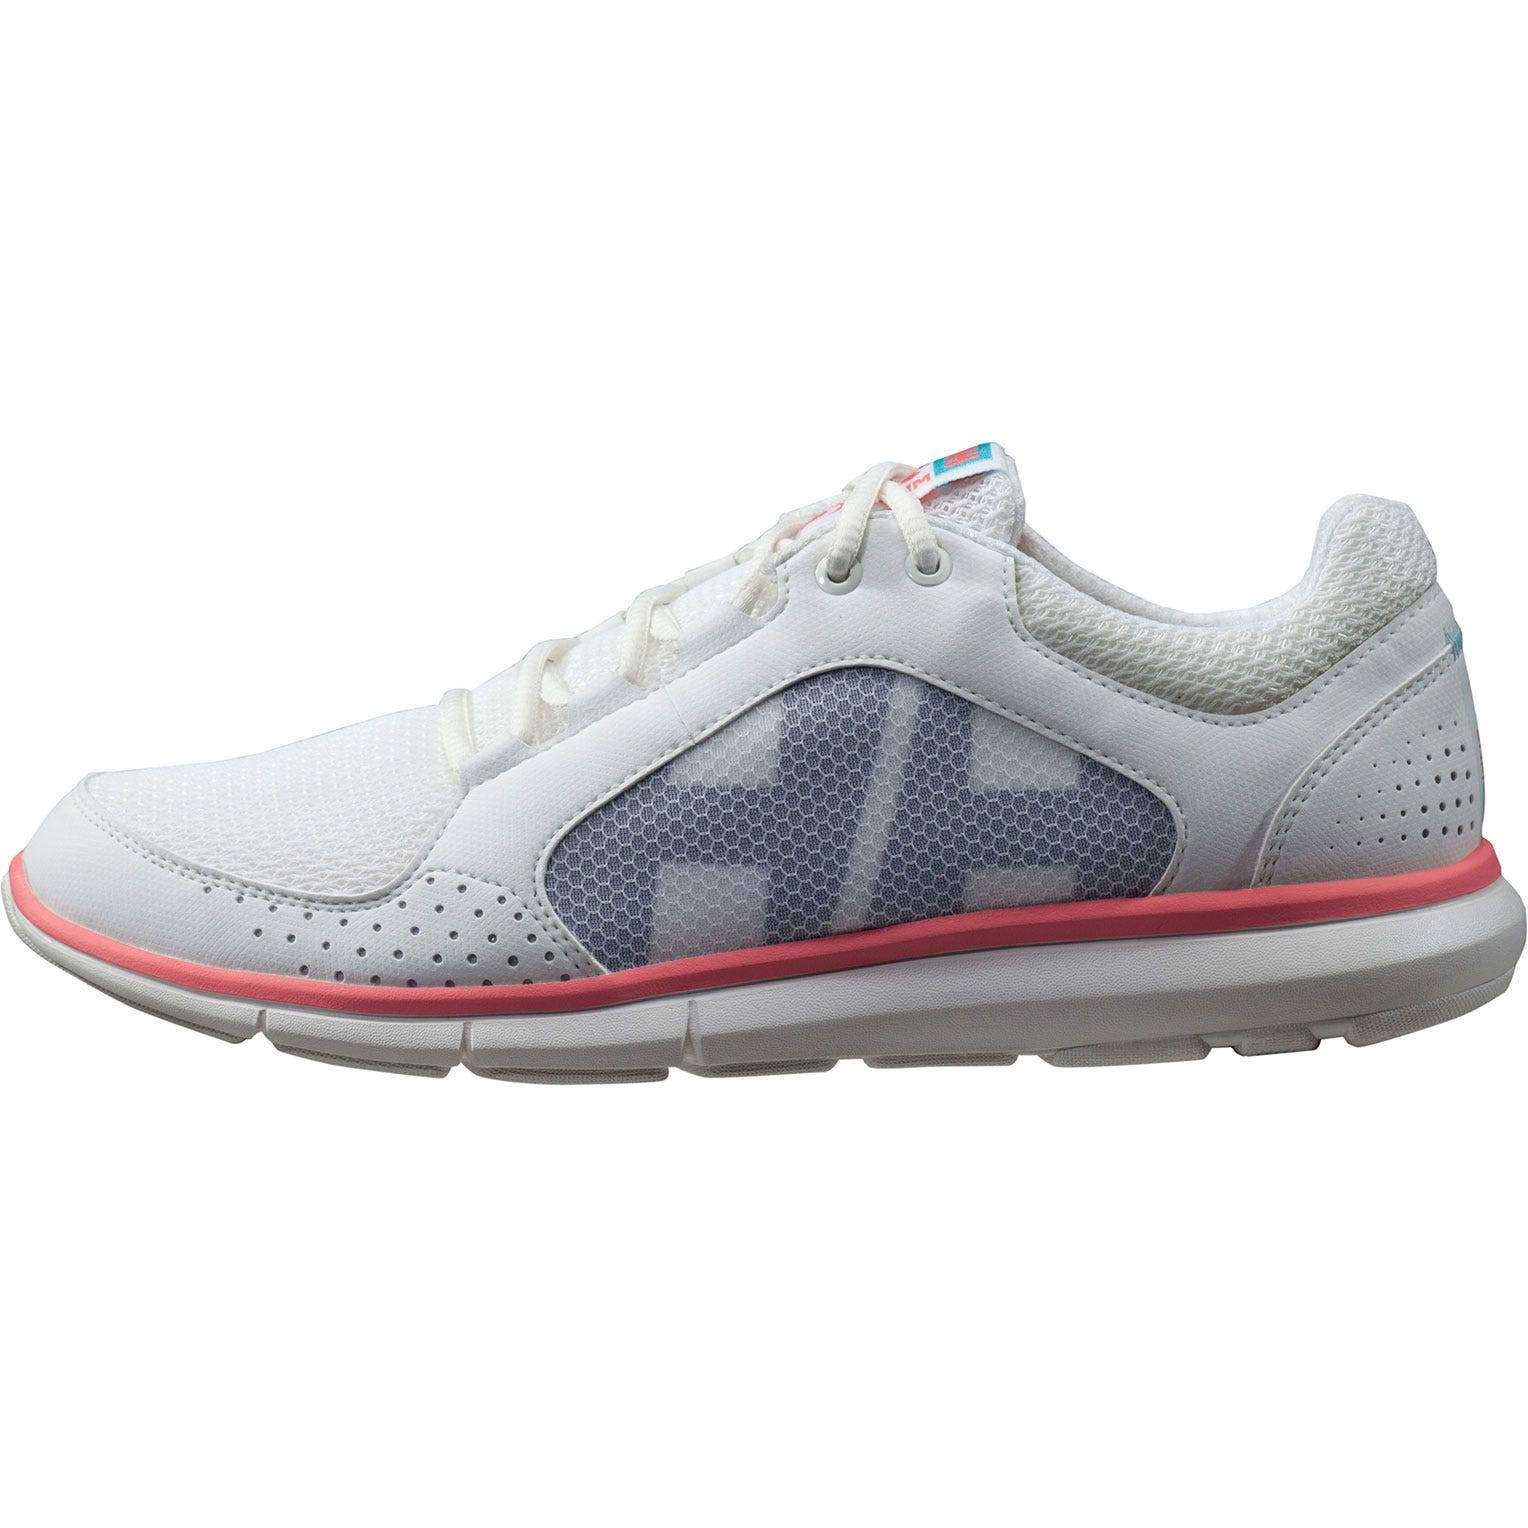 Helly Hansen W Ahiga V3 Hydropower Womens Sailing Shoe White 37/6